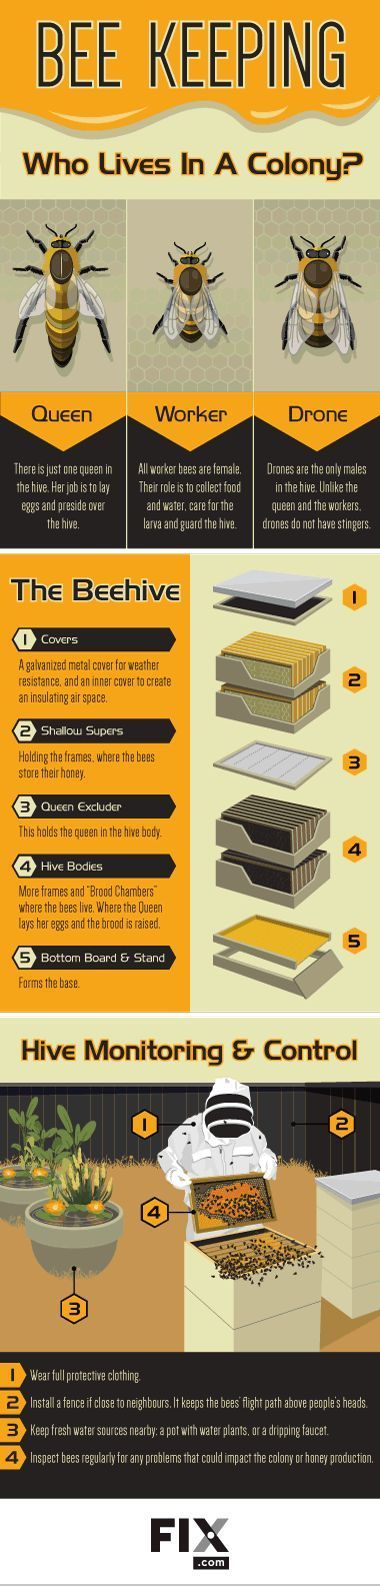 Bee Keeping: Become a Backyard Beekeeper [by FIX -- via #tipsographic]. More at tipsographic.com